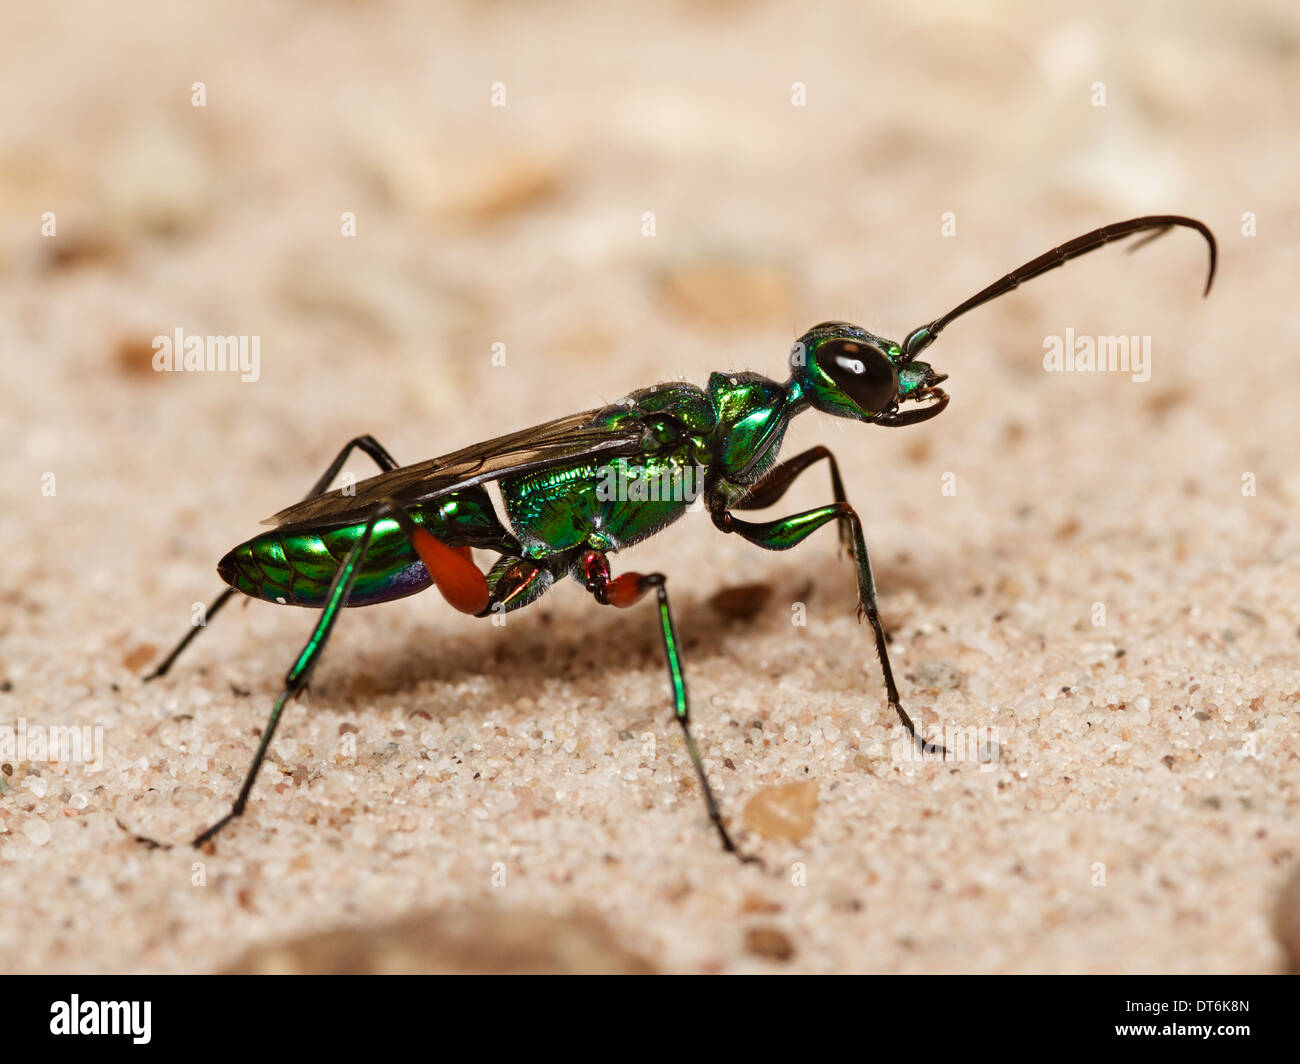 Jewel wasp (Ampulex compressa) - Stock Image